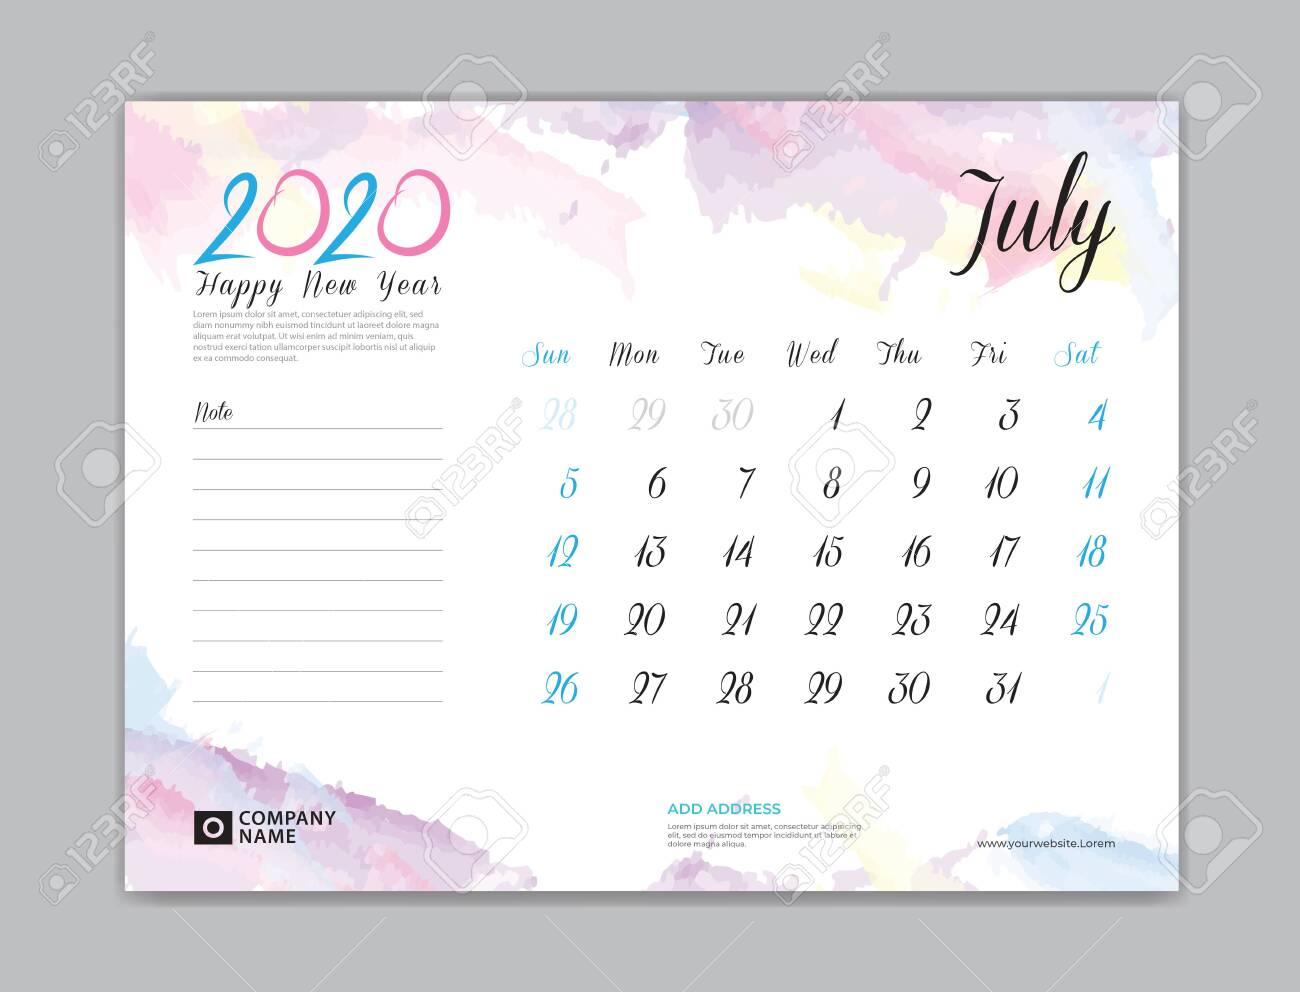 Desk Calendar For 2020 Year, July 2020 Template, Week Start On.. intended for July Of 2020